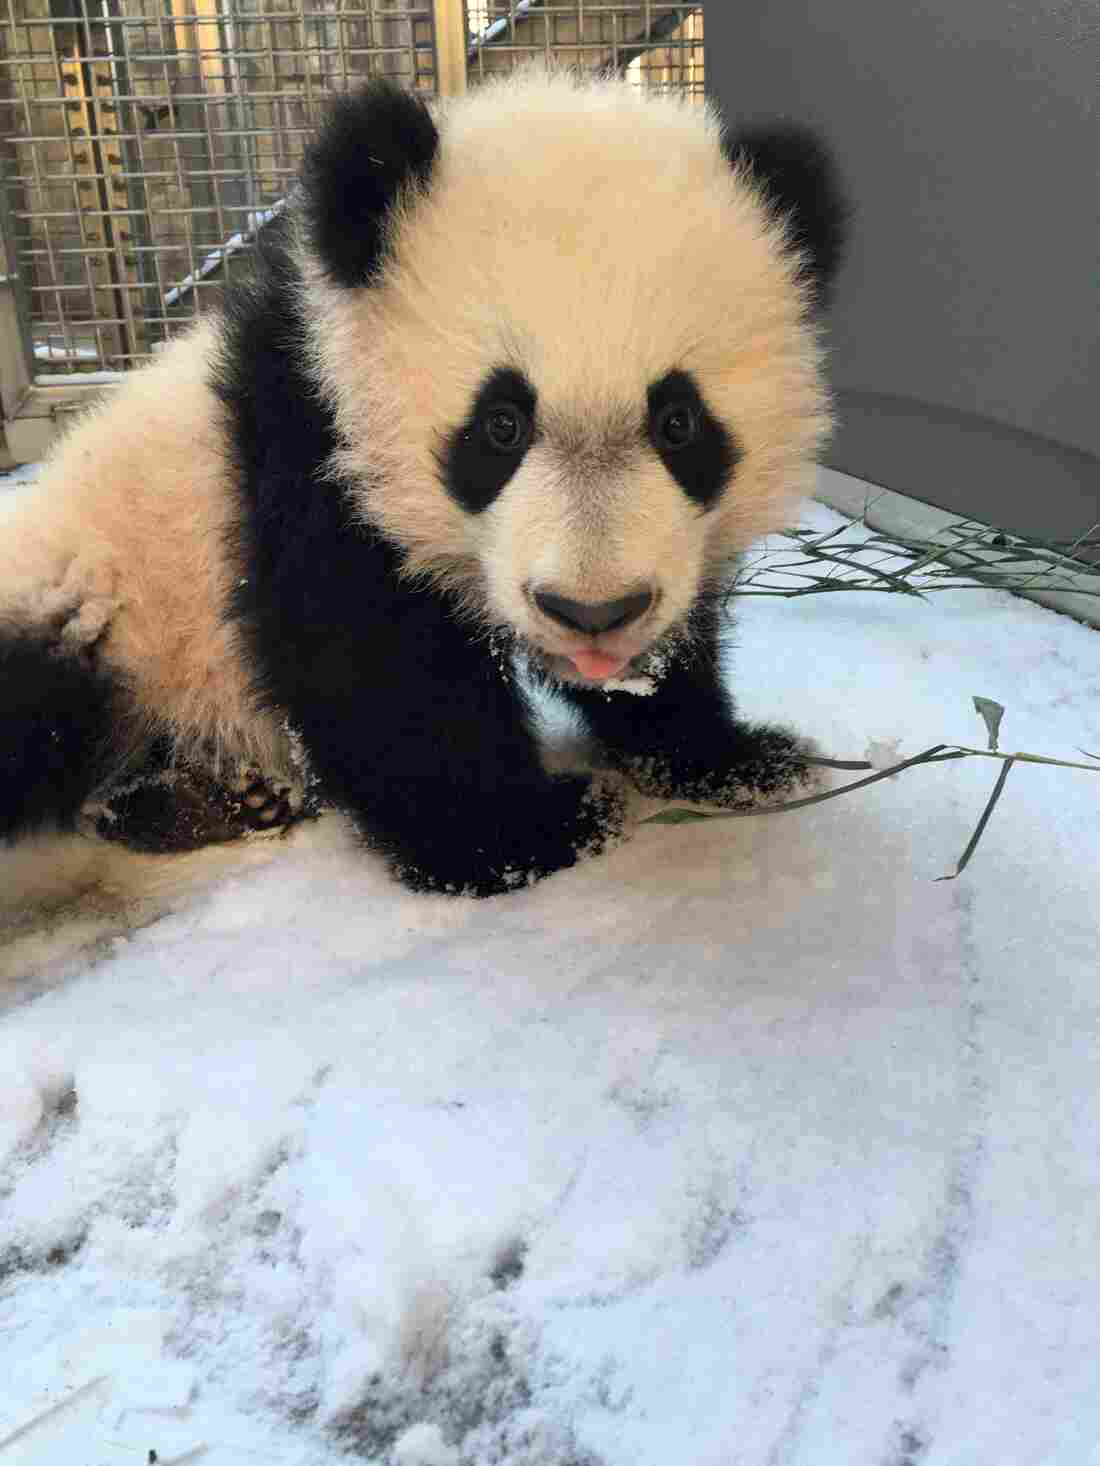 """Bei Bei, the youngest giant panda at the National Zoo, experiences snow for the first time on Jan. 21. """"Keepers said he wasn't quite sure what to make of the powdery snow,"""" the Zoo wrote on Flickr."""